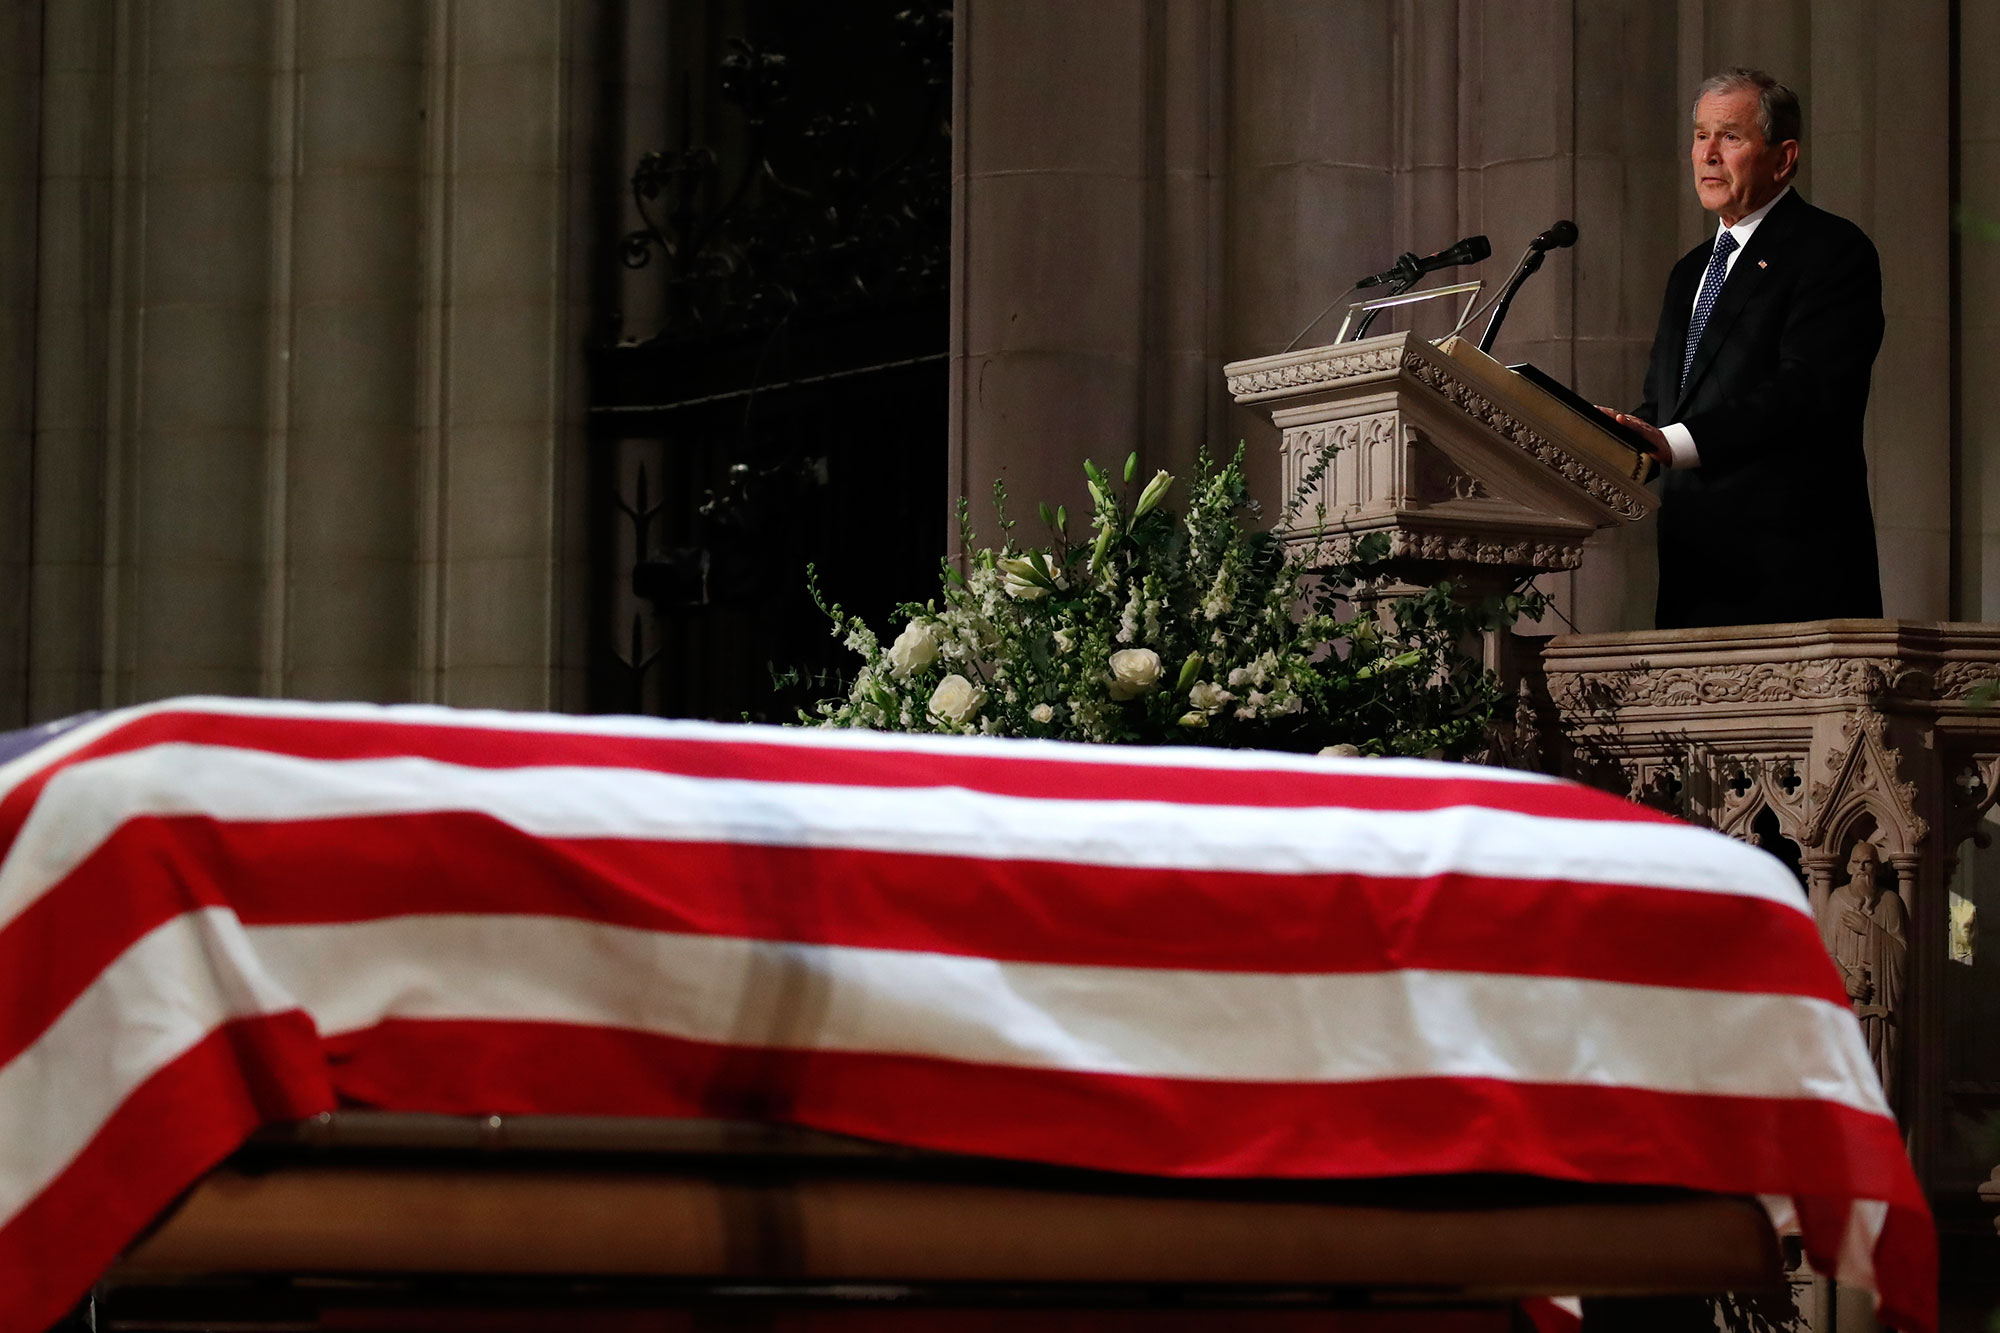 "<div class=""meta image-caption""><div class=""origin-logo origin-image none""><span>none</span></div><span class=""caption-text"">Former President George W. Bush speaks in front of the flag-draped casket of his father. (Alex Brandon, Pool/AP Photo)</span></div>"